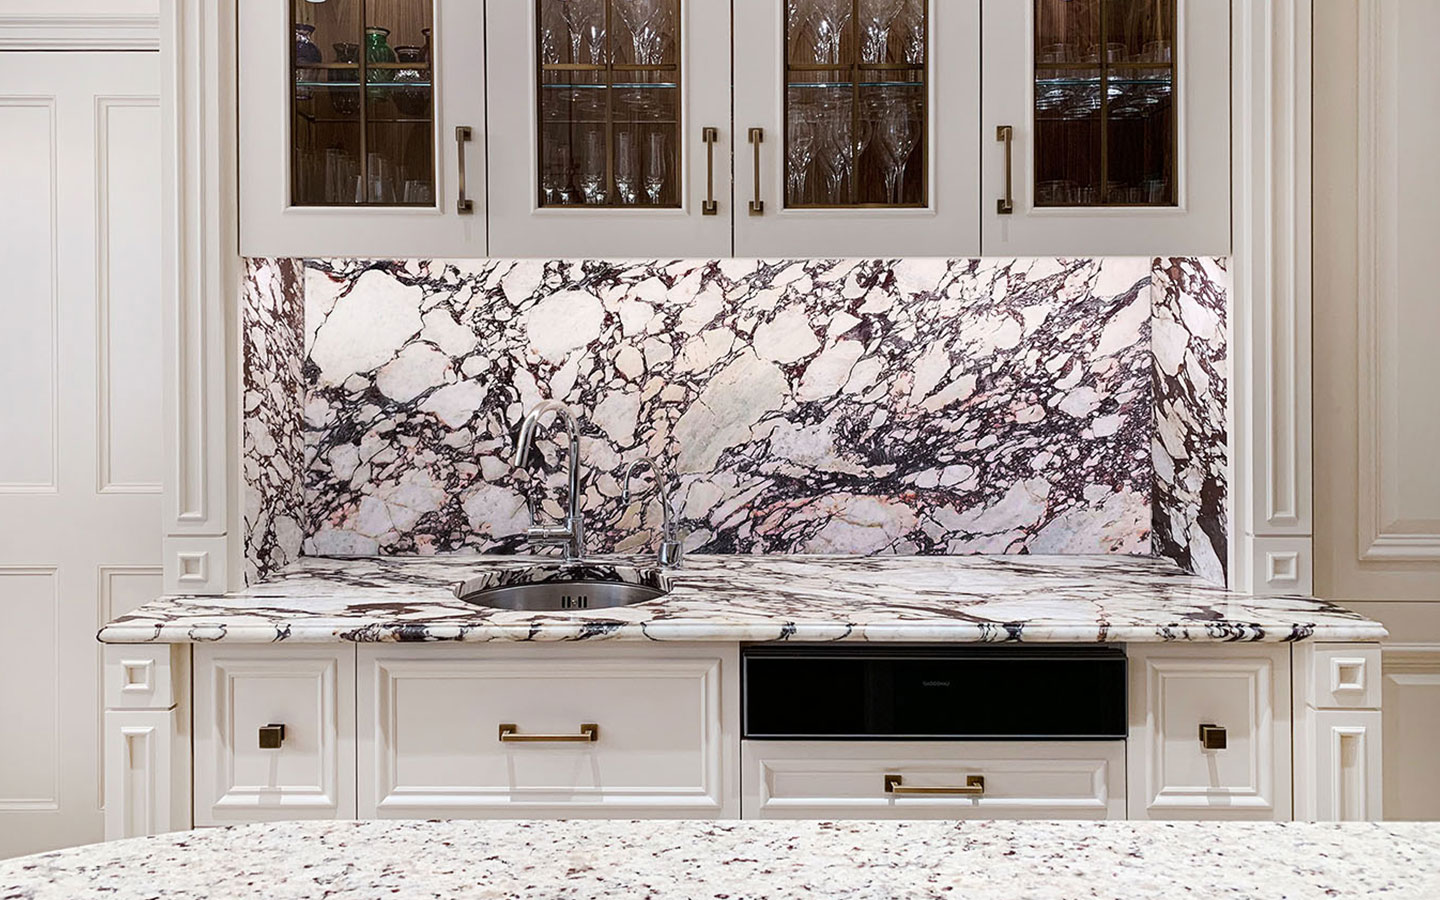 Honed Calacatta Viola marble kitchen worktop, supplied and installed by M&G Ltd – Private residential